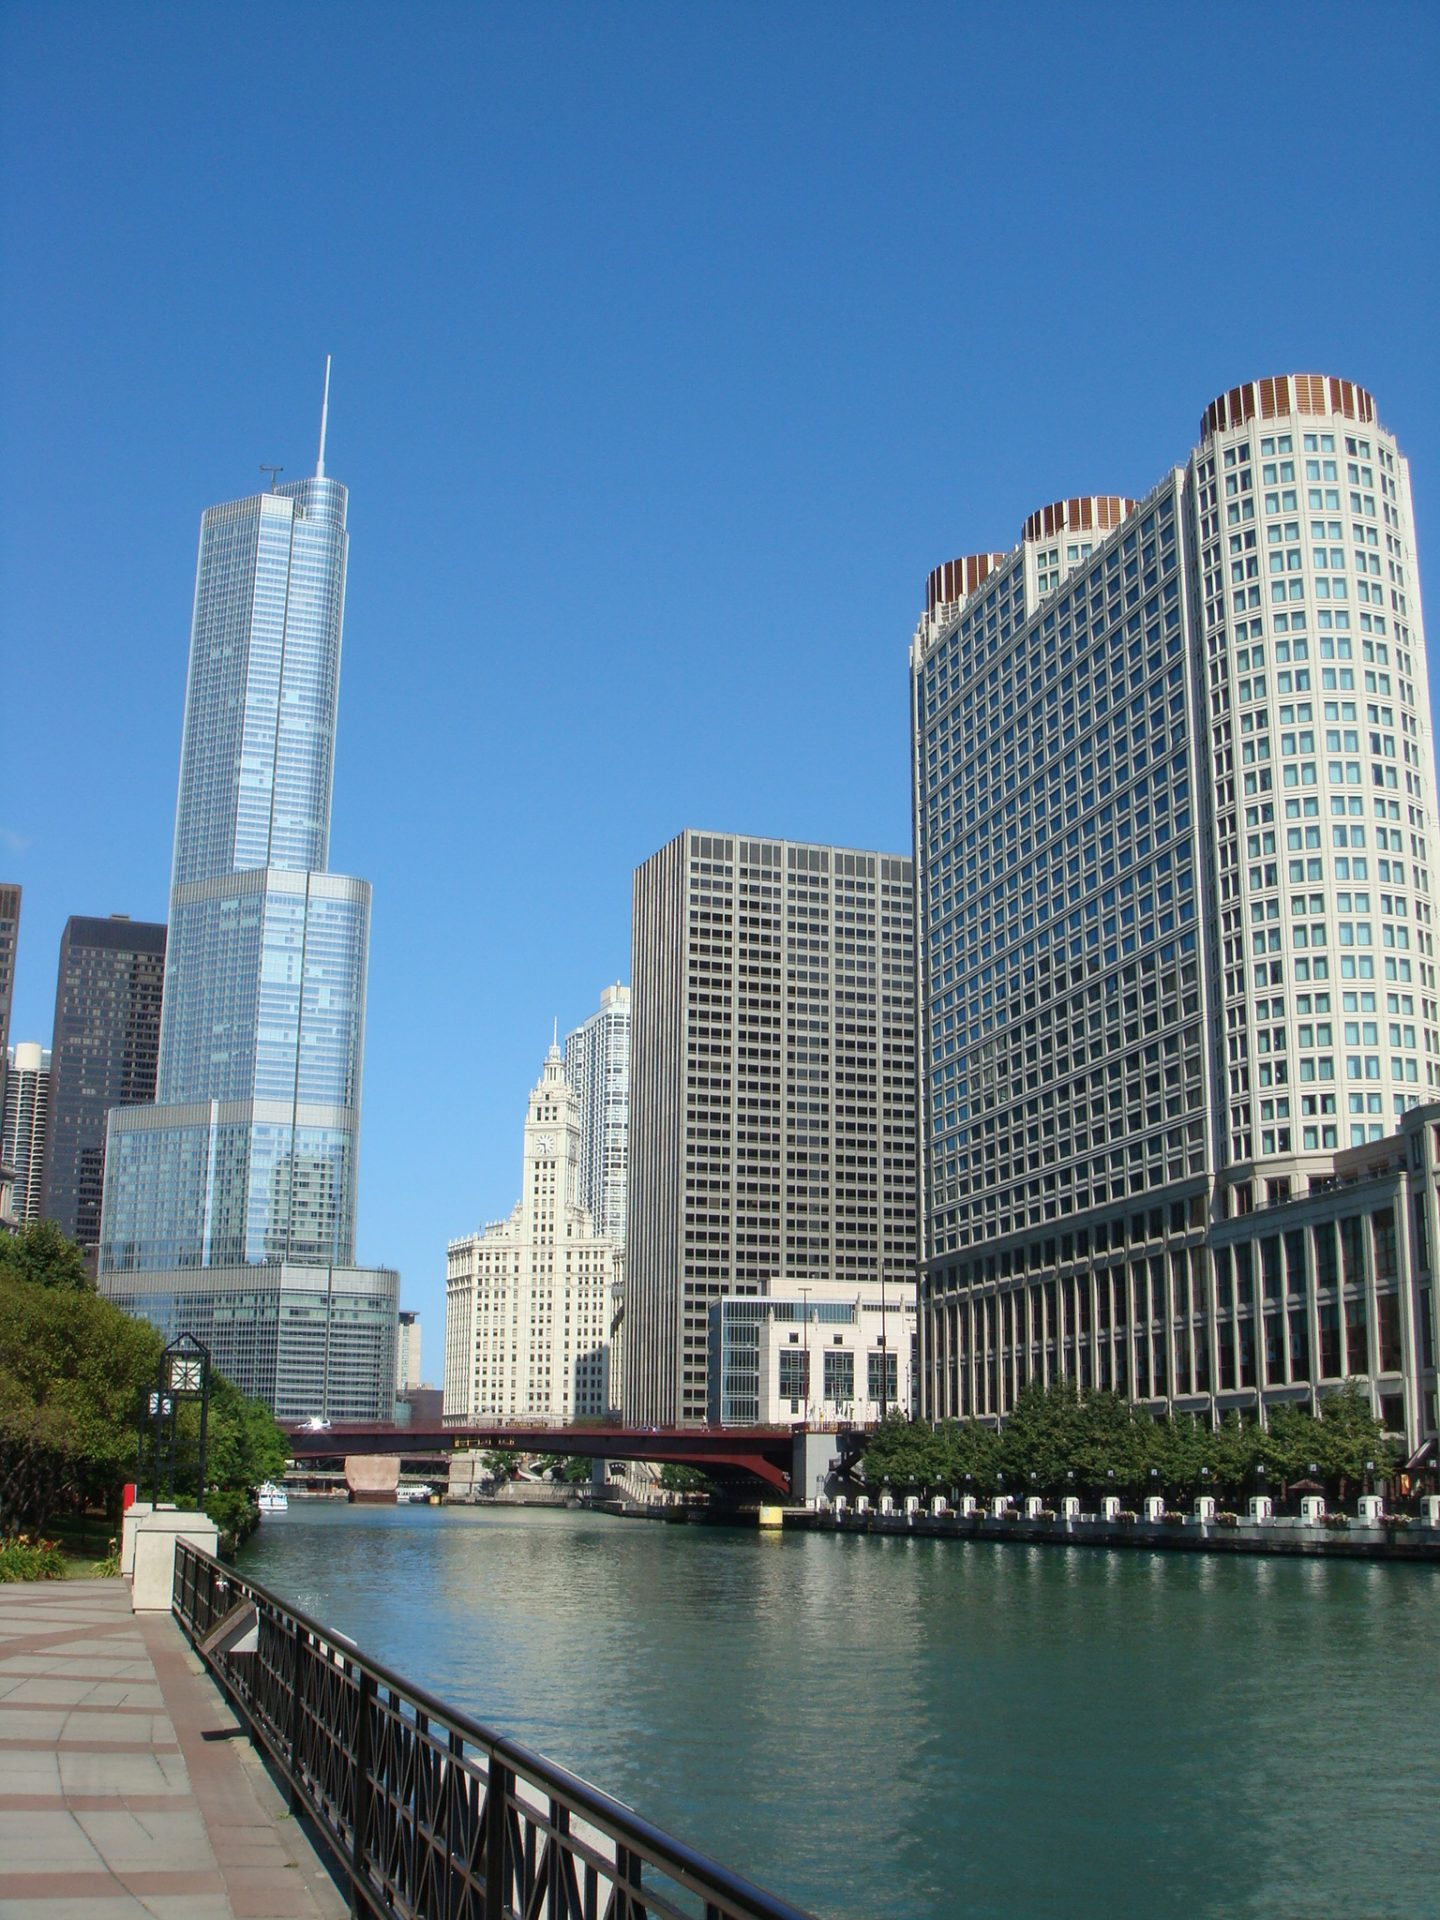 The Chicago River with Trump Tower in the background